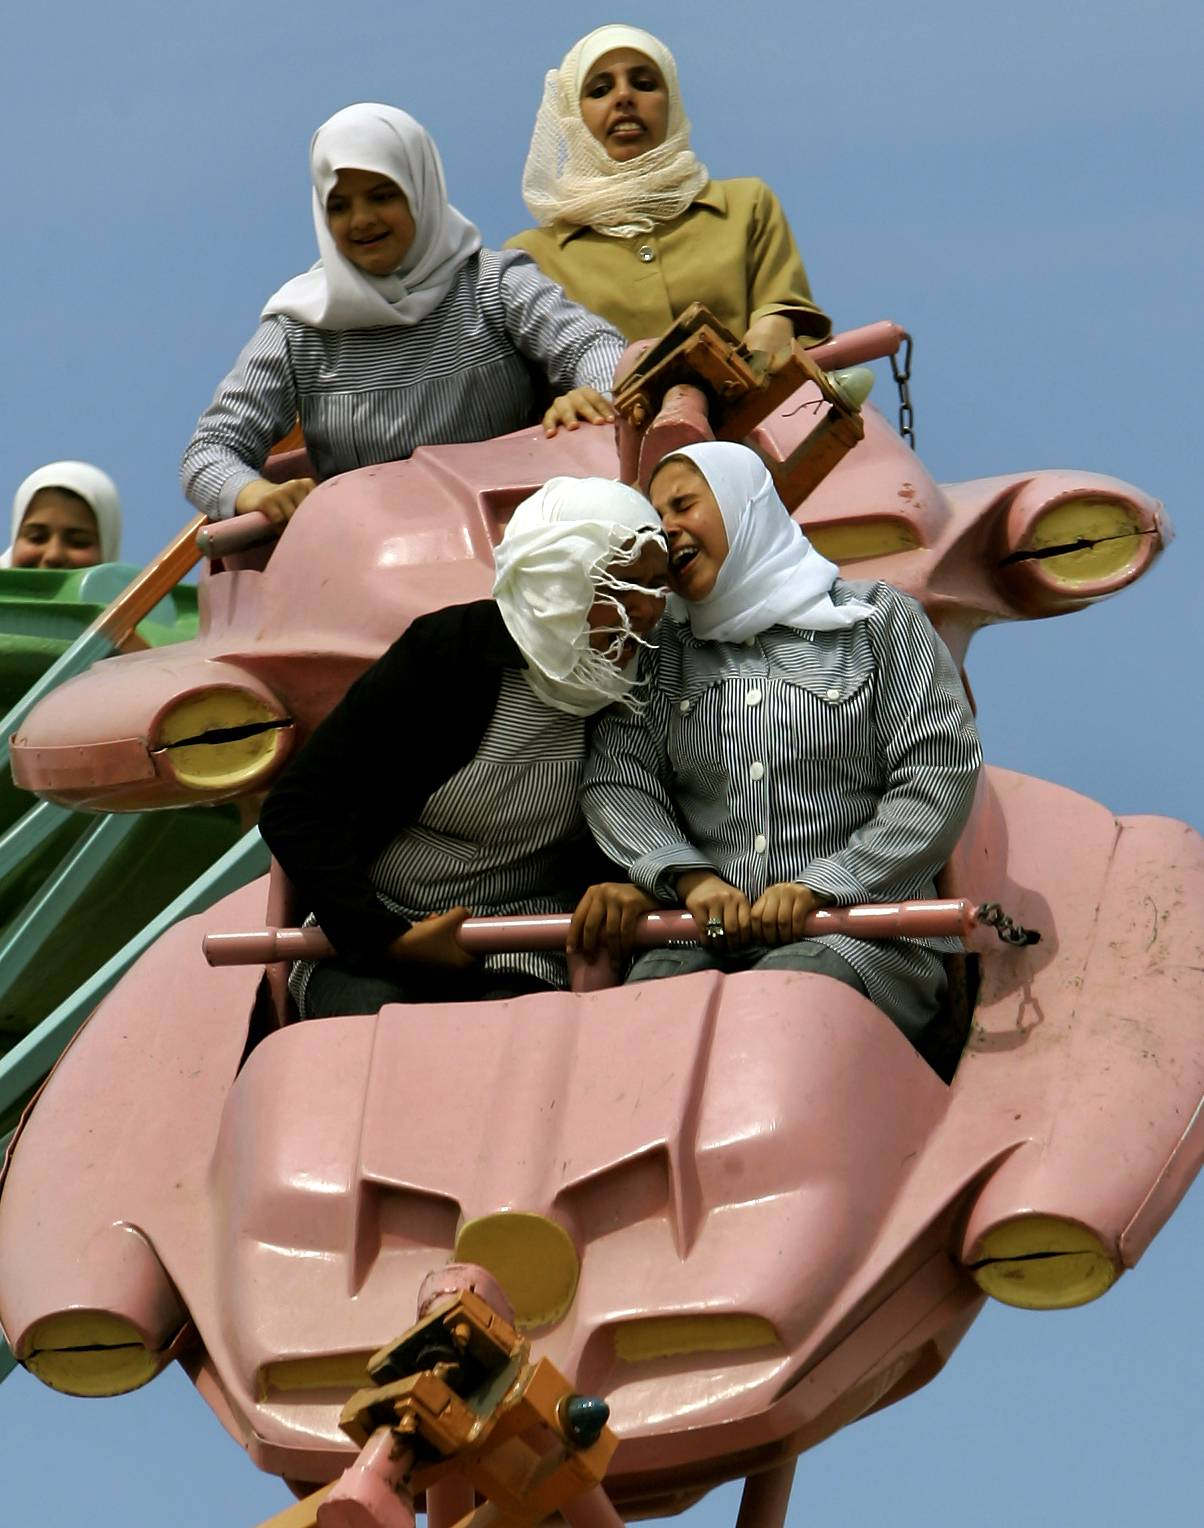 In this Sunday, March 26, 2006 file photo made by Associated Press photographer Anja Niedringhaus, Palestinians enjoy a ride at an amusement park outside Gaza City.